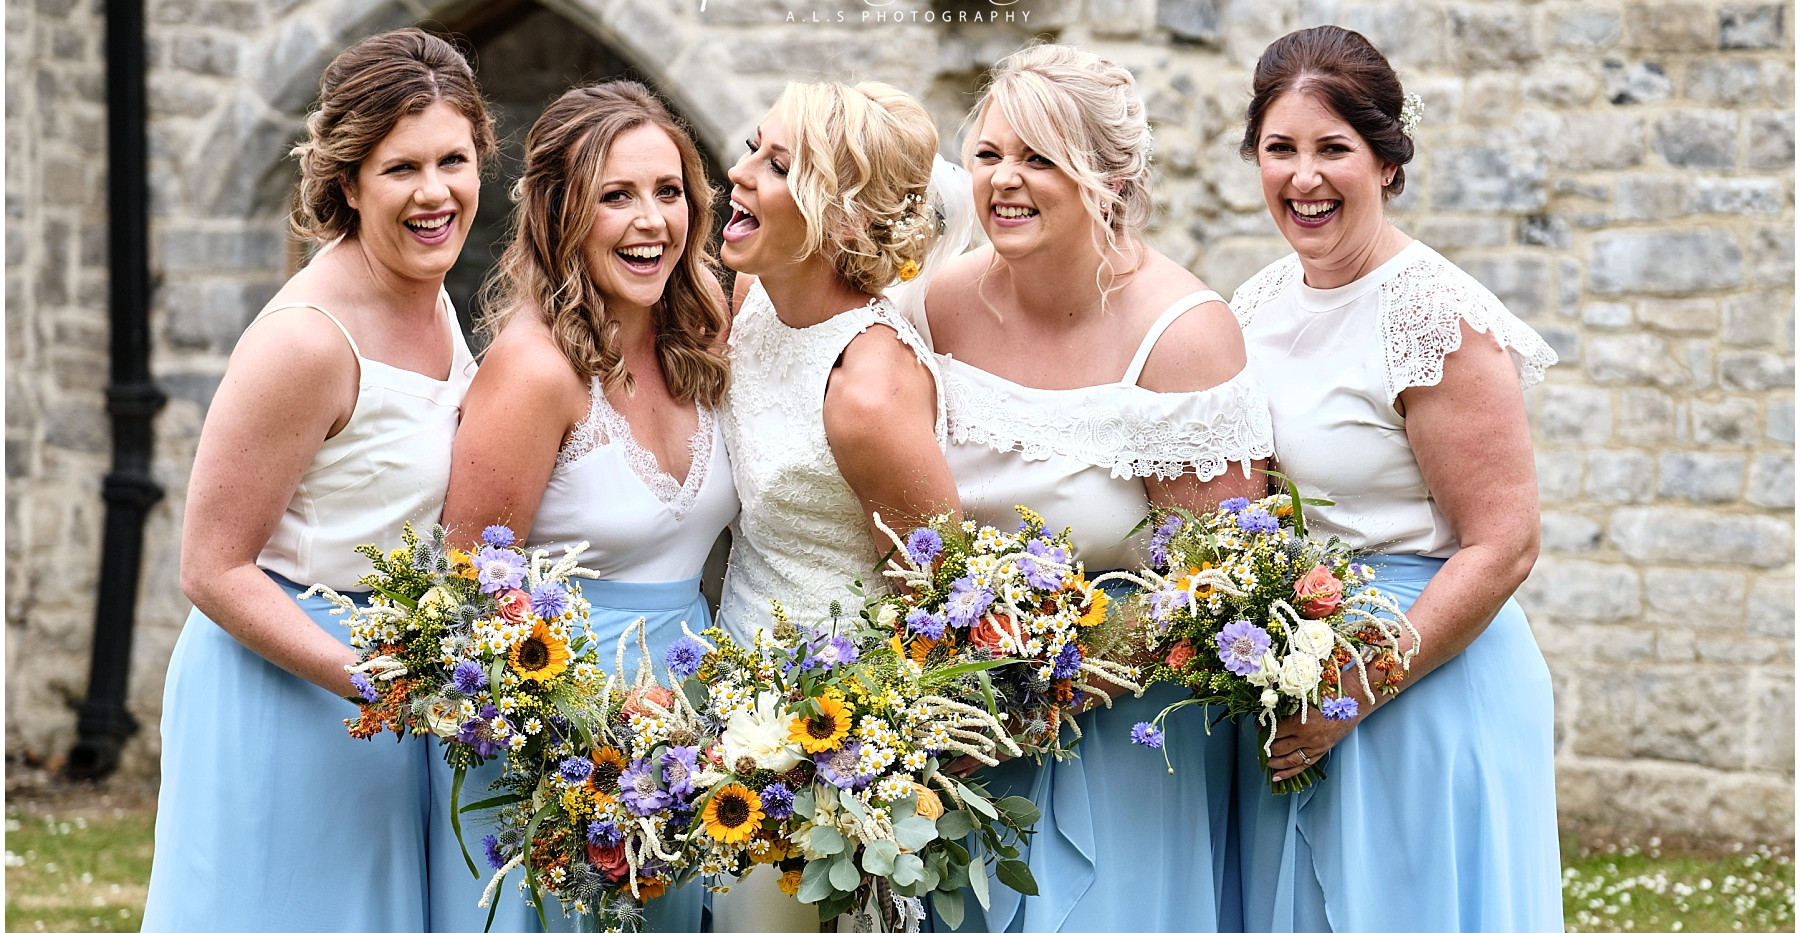 Cheerful summer wedding bouquets